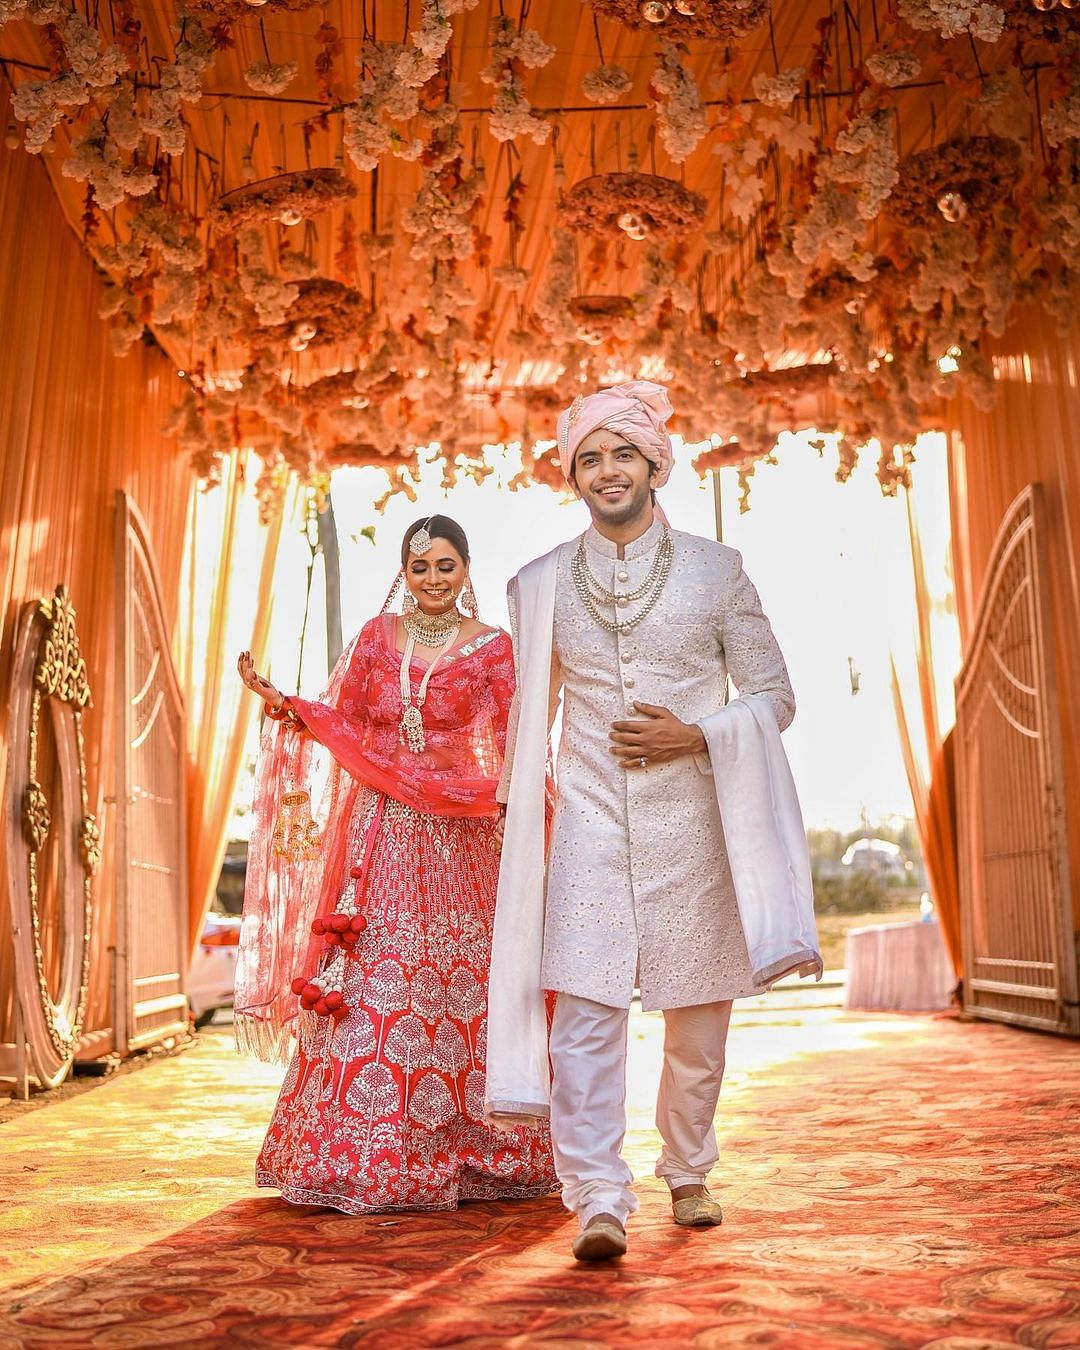 TV actor Vikram Singh Chauhan ties the knot with girlfriend Sneha Shkukla